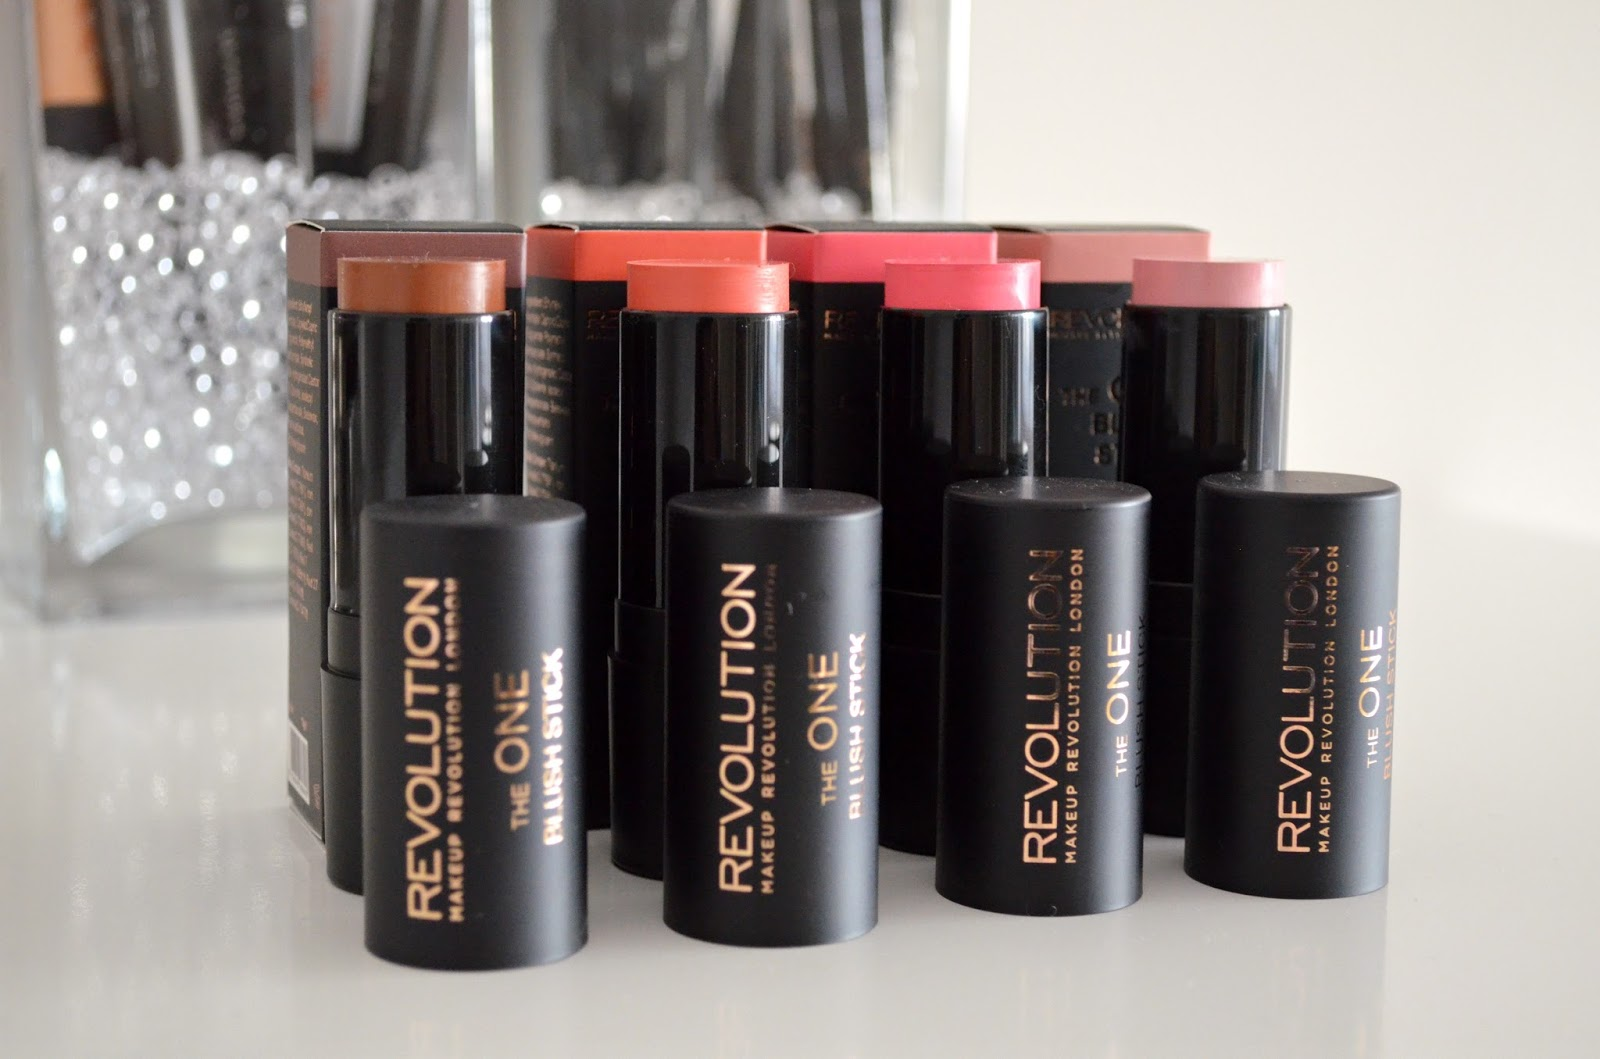 Makeup Revolution The One blush sticks review matte formula